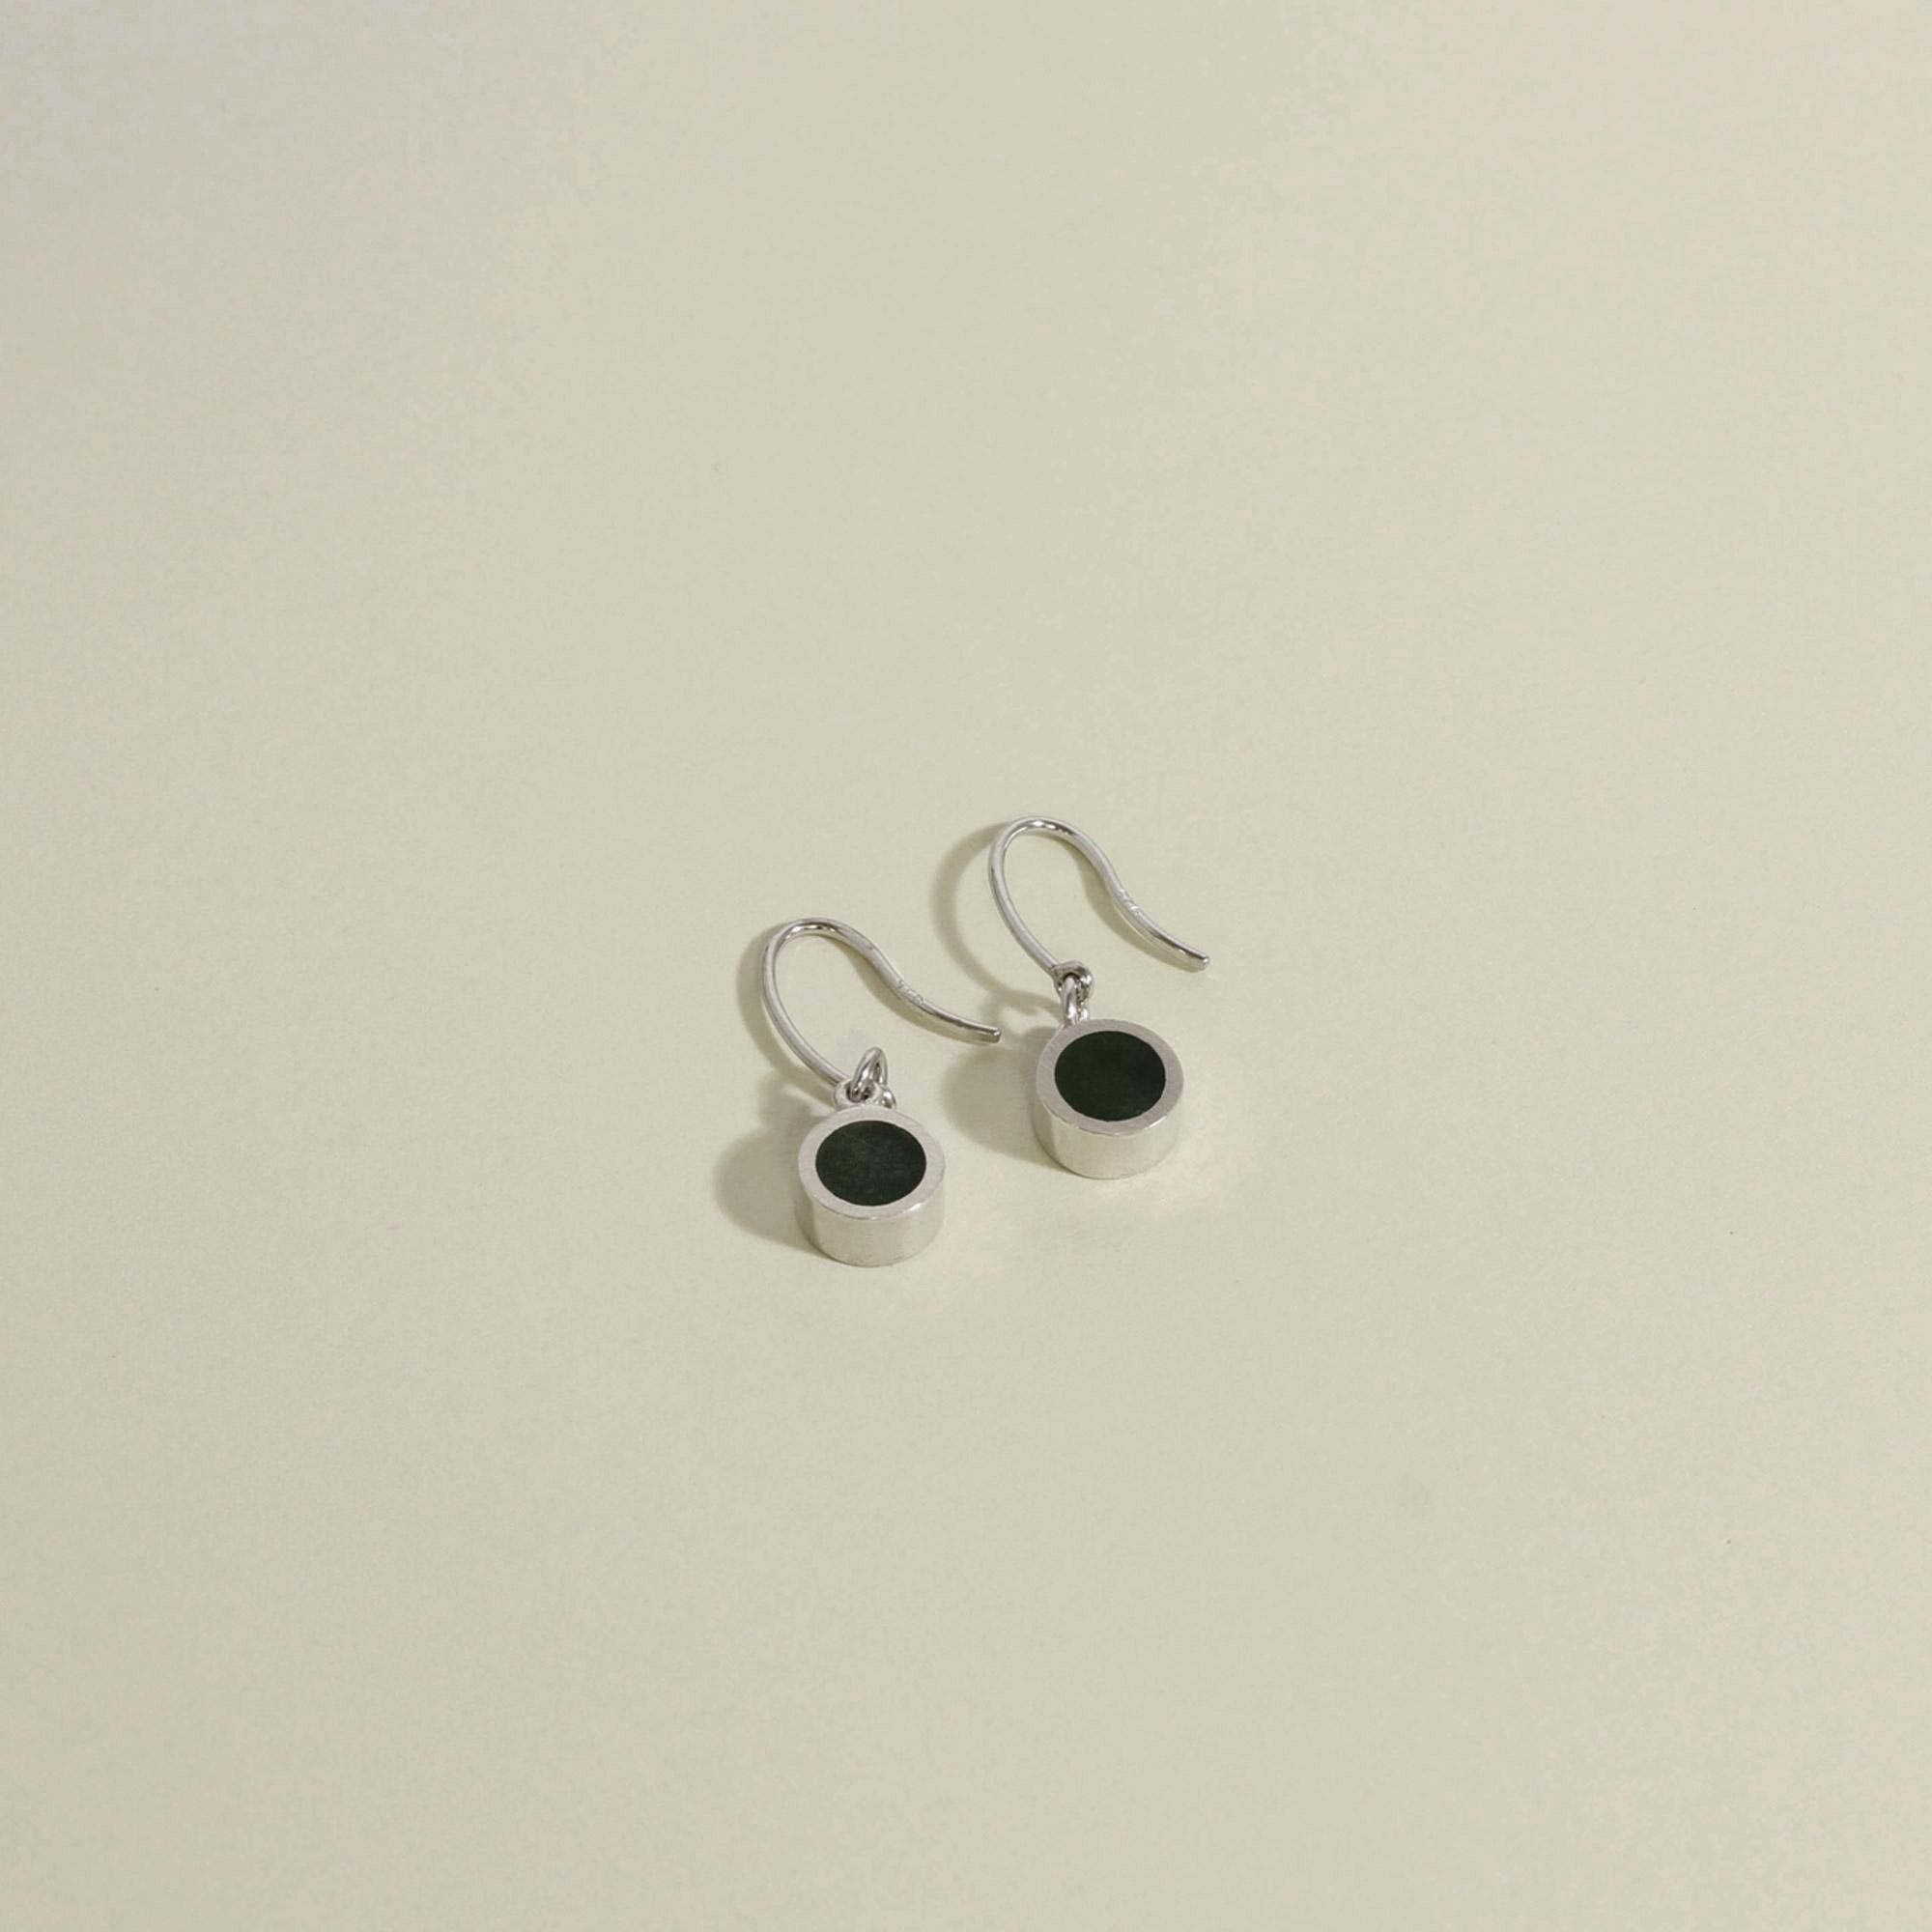 Tiny New Zealand Jade and Sterling Silver Drop Earrings